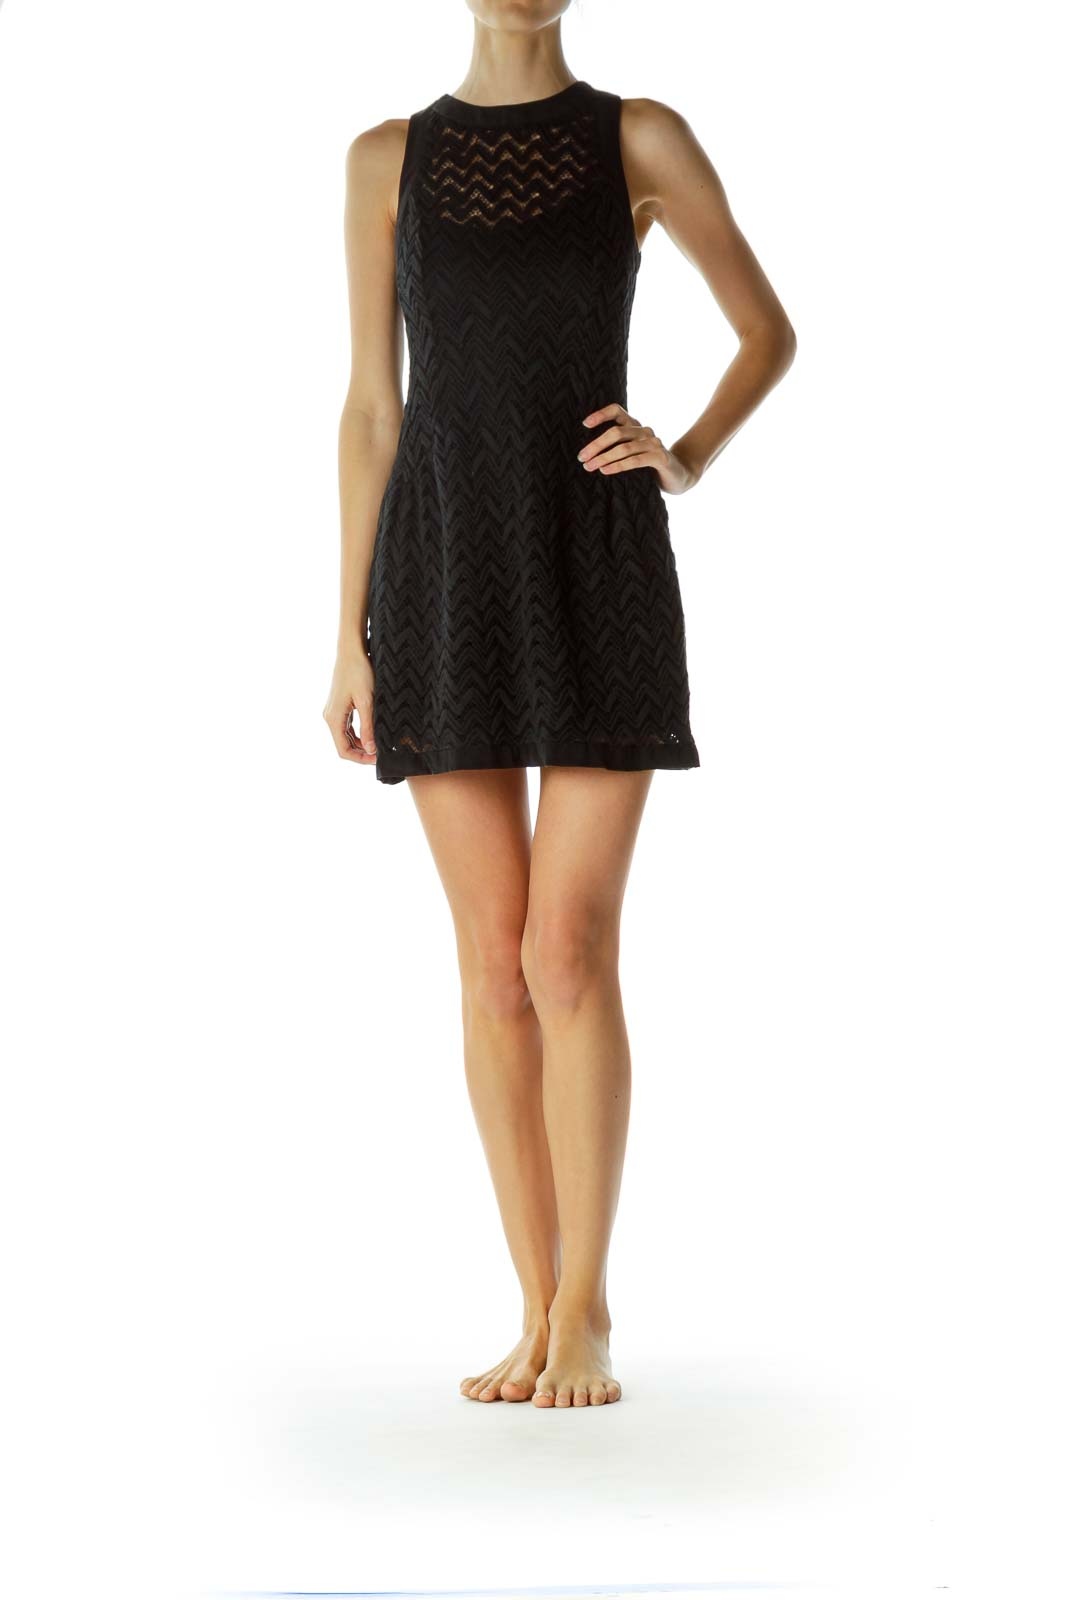 Black Sleeveless Knitted Dress with Slip